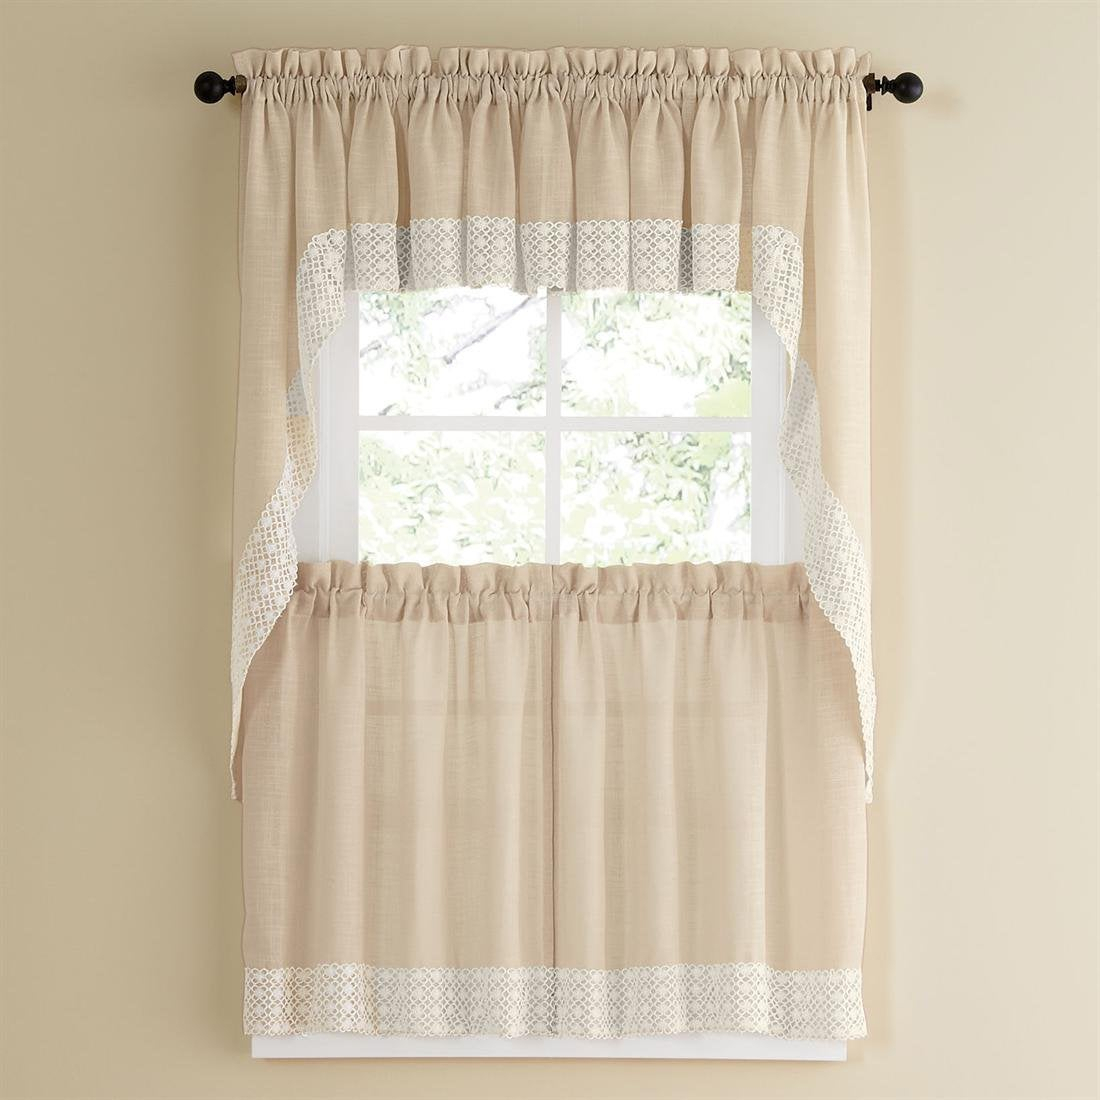 French Vanilla Country Style Curtain Parts With White Daisy Lace Accent Tier, Swag And Valance Options For Spring Daisy Tiered Curtain 3 Piece Sets (View 9 of 20)